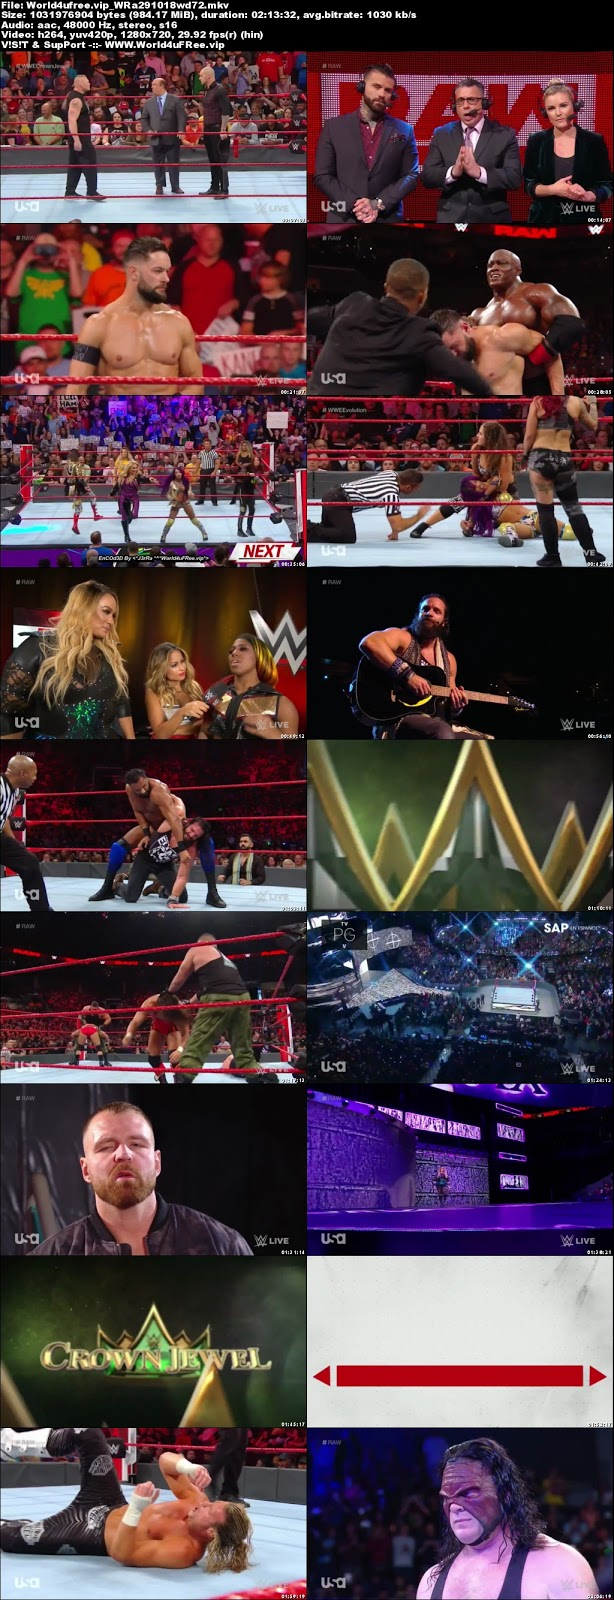 WWE Monday Night RAW 29 OCTOBER 2018 720p HDTV 1Gb x264 world4ufree.vip tv show wwe monday night raw wwe show monday night raw compressed small size free download or watch onlne at world4ufree.vip